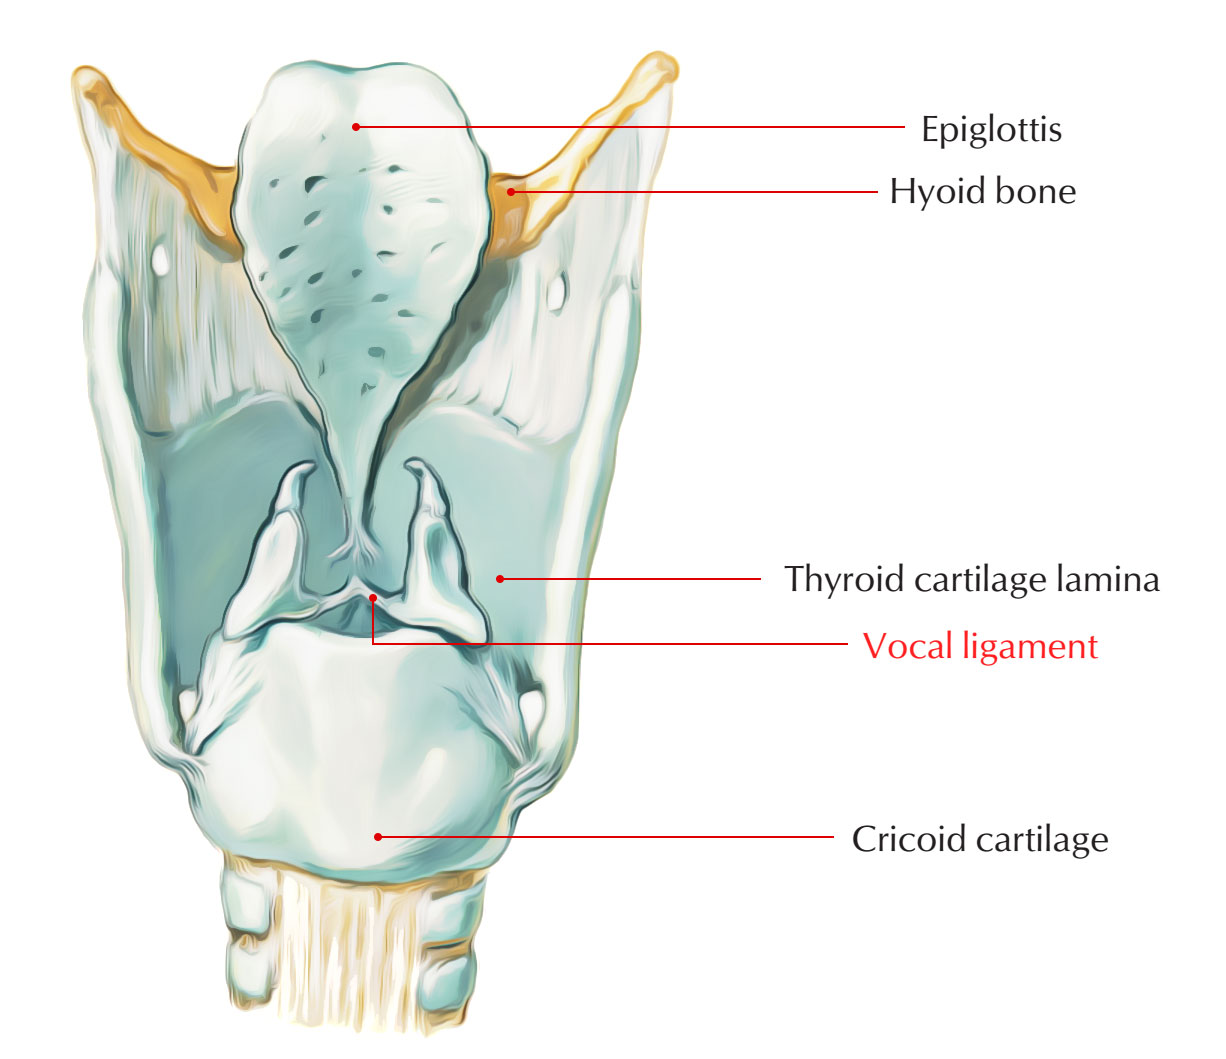 Thyroid Cartilage